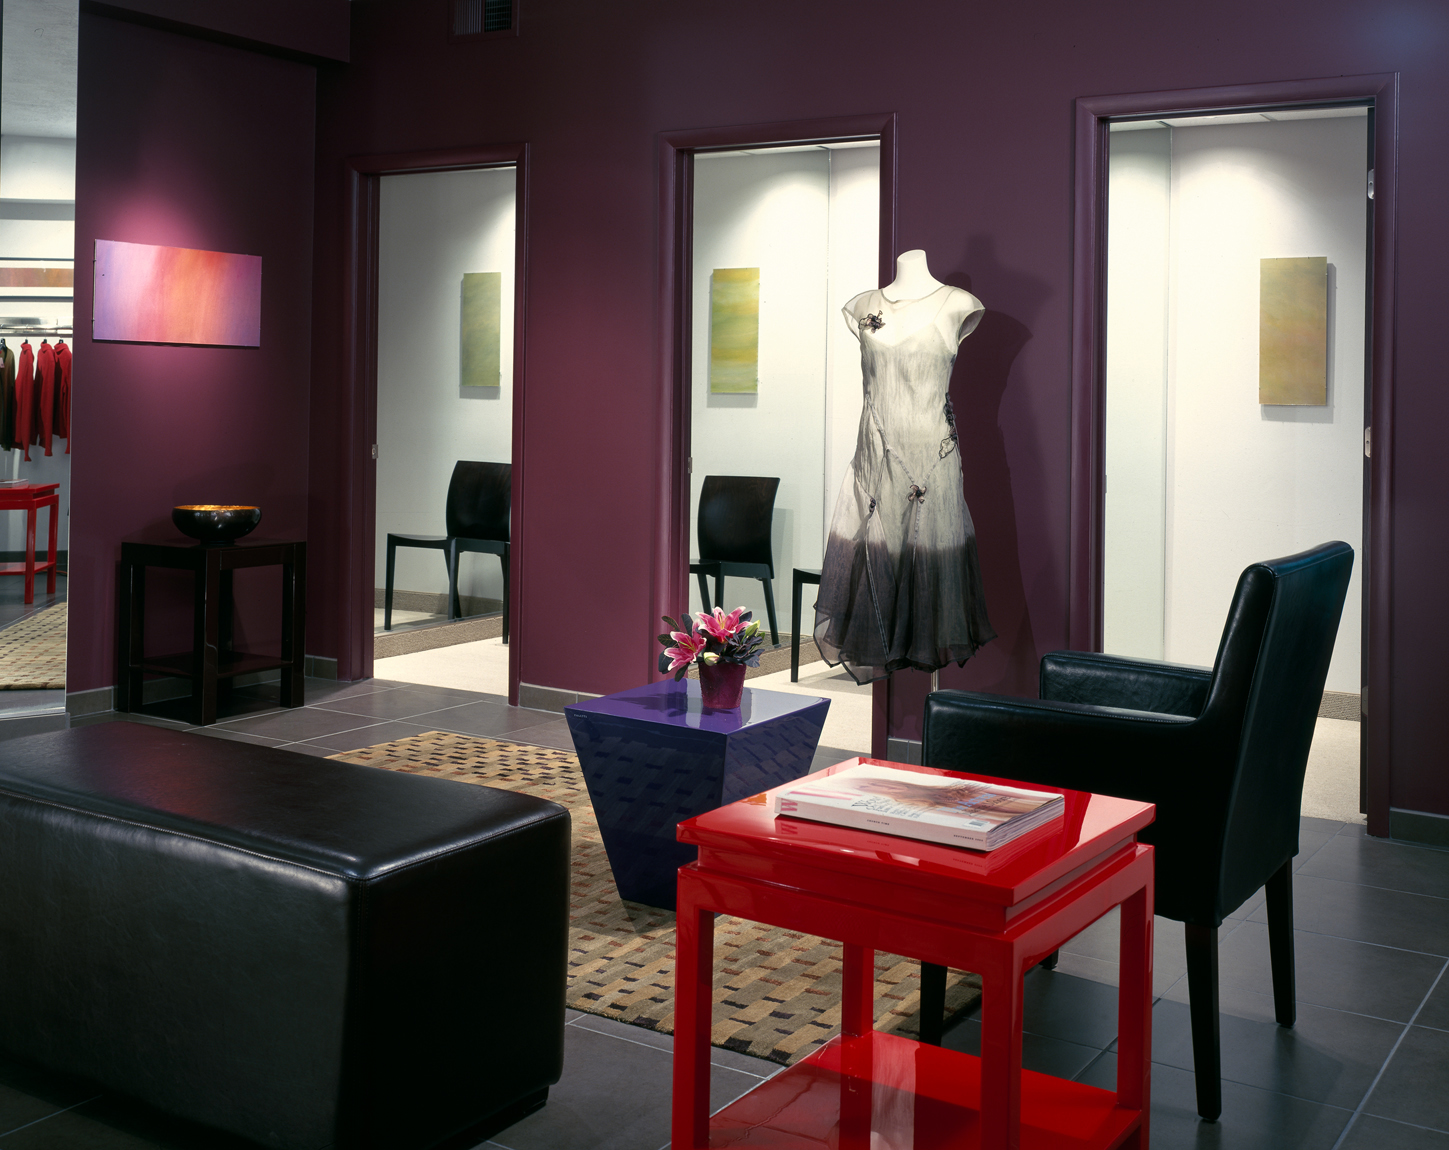 Interior view towards changing rooms in an upscale clothing boutique. Black leather furnishings are framed by maroon walls and the centerpiece features a bright red table.Architectural Photography by: Paul Richer / RICHER IMAGES